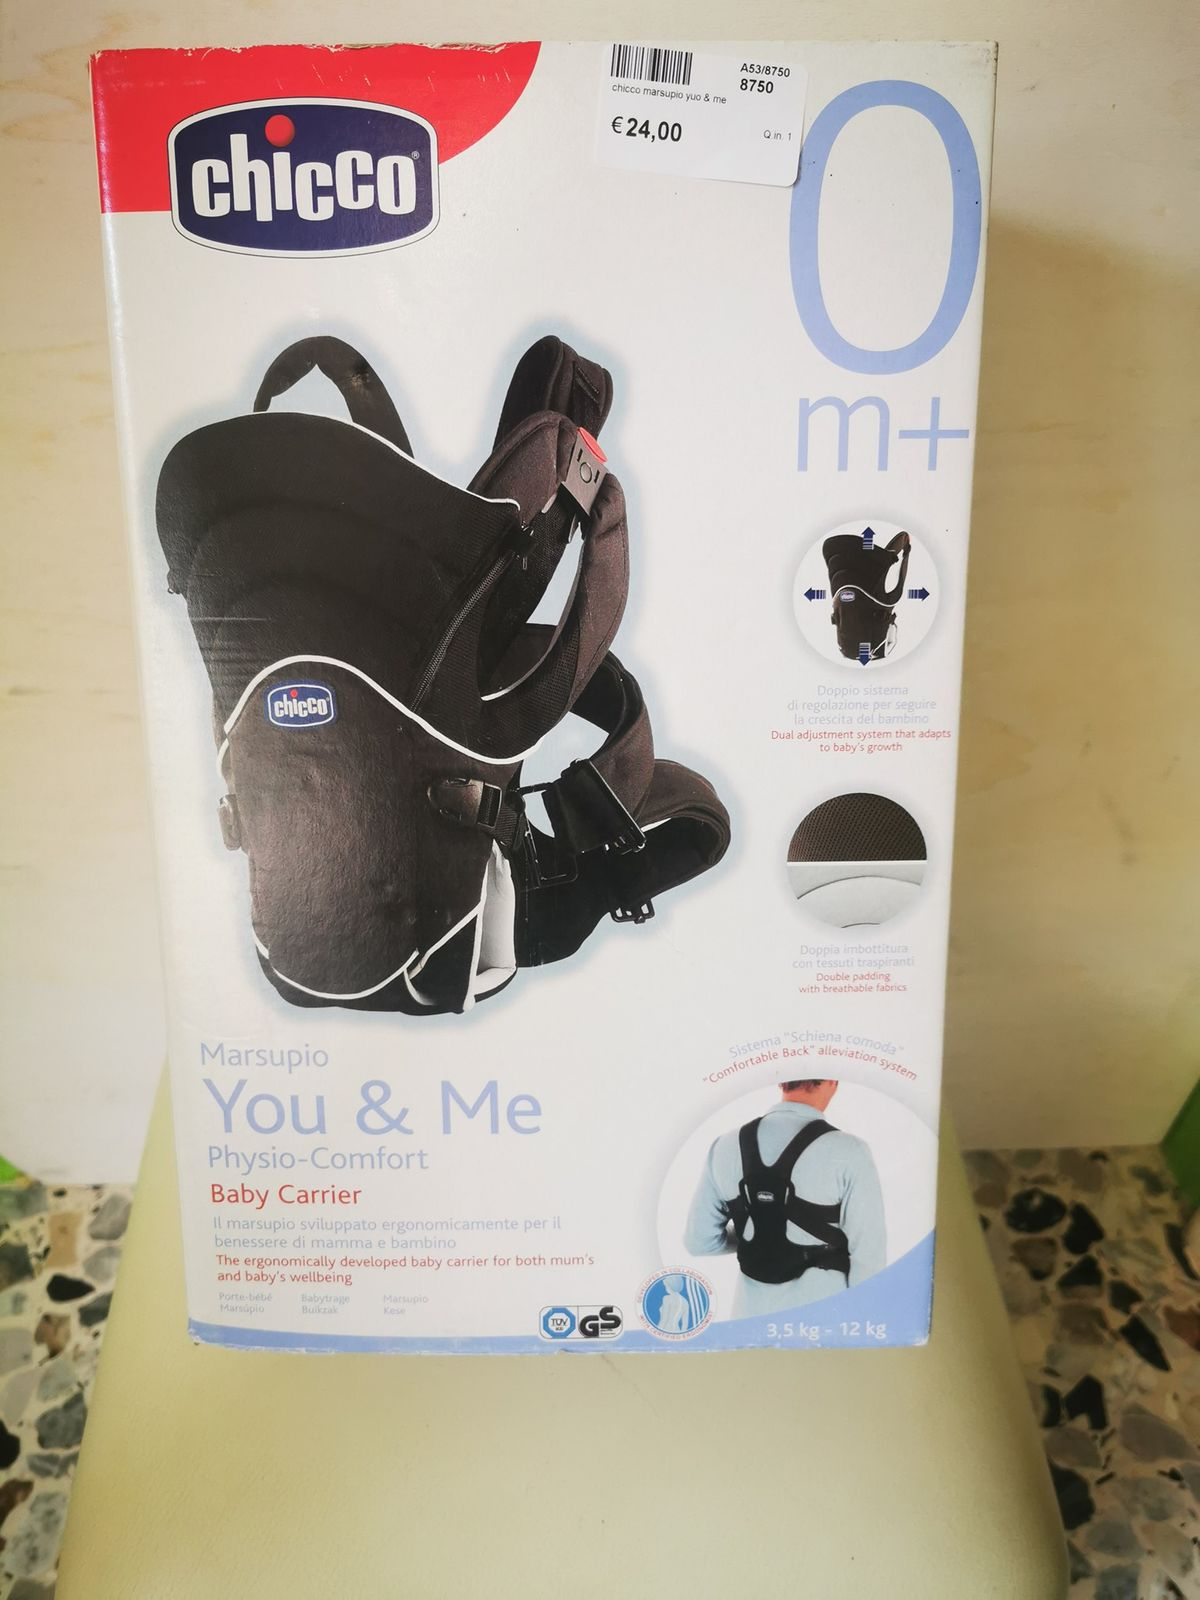 Chicco marsupio you & me 8750 Euro 24,00